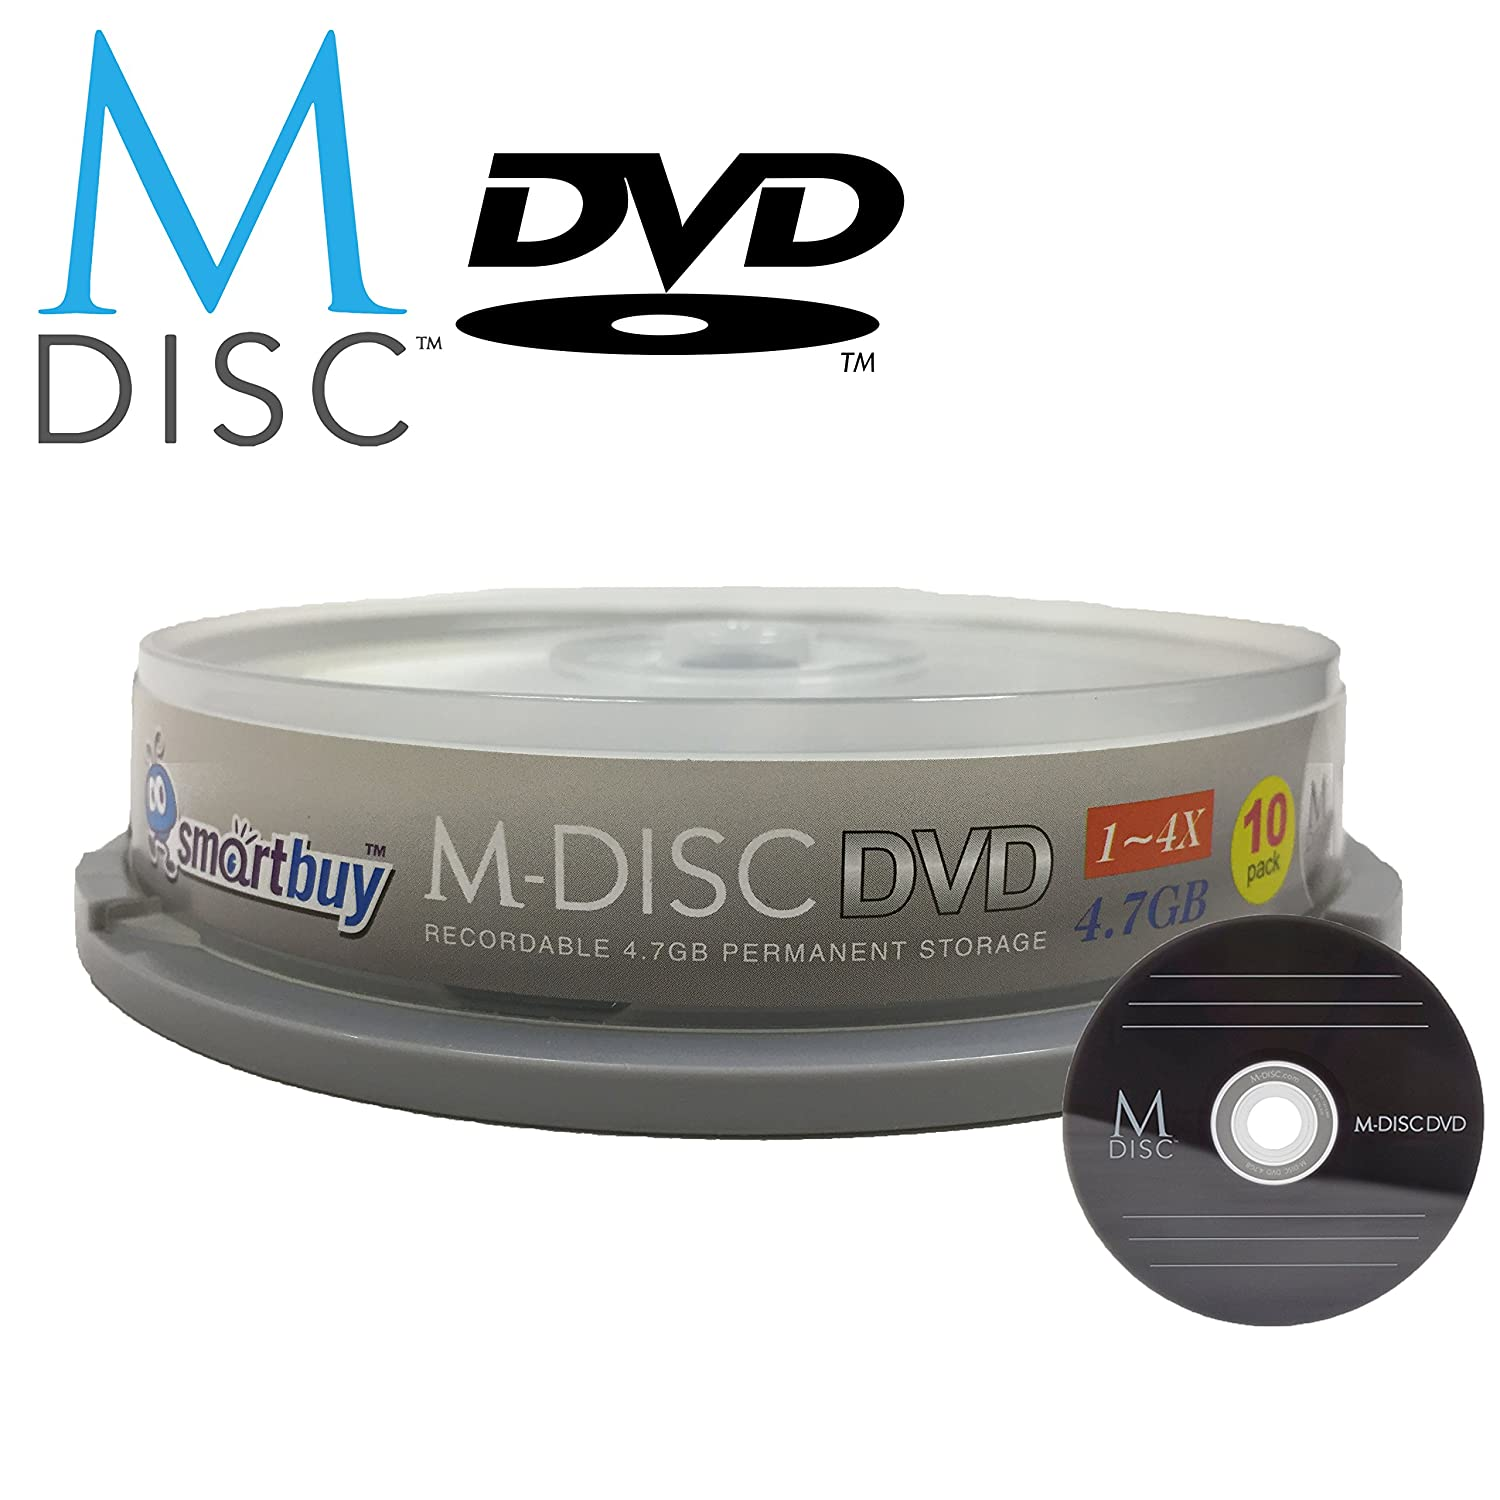 10 Pack Smartbuy M-Disc DVD 4.7GB 4X HD 1000 Year Permanent Data Archival / Backup Blank Media Recordable Disc